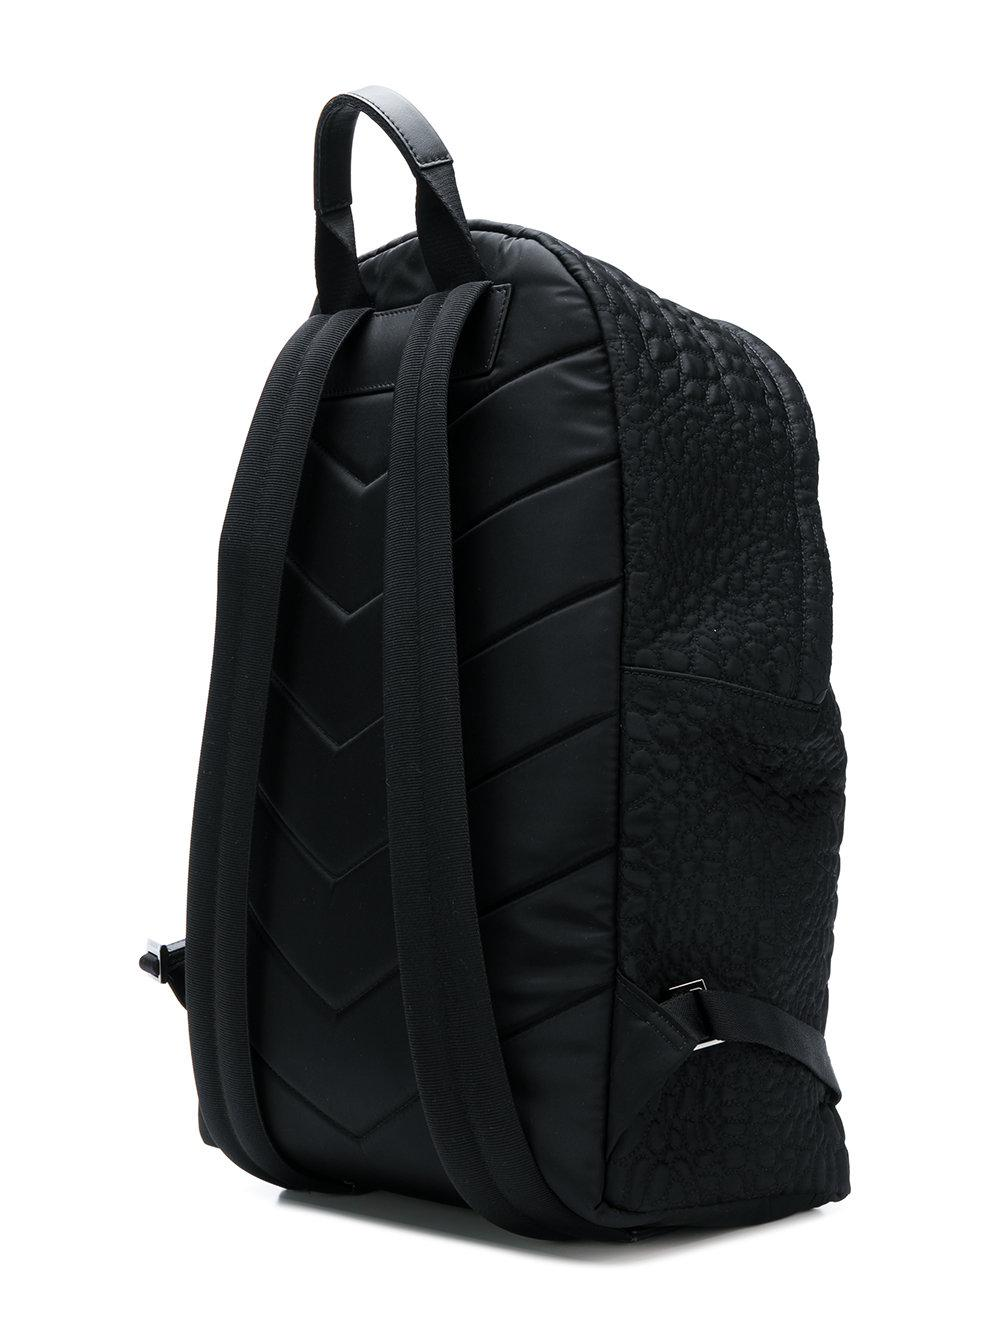 81013b56a8 Versace - Black Quilted Medusa Backpack for Men - Lyst. View fullscreen